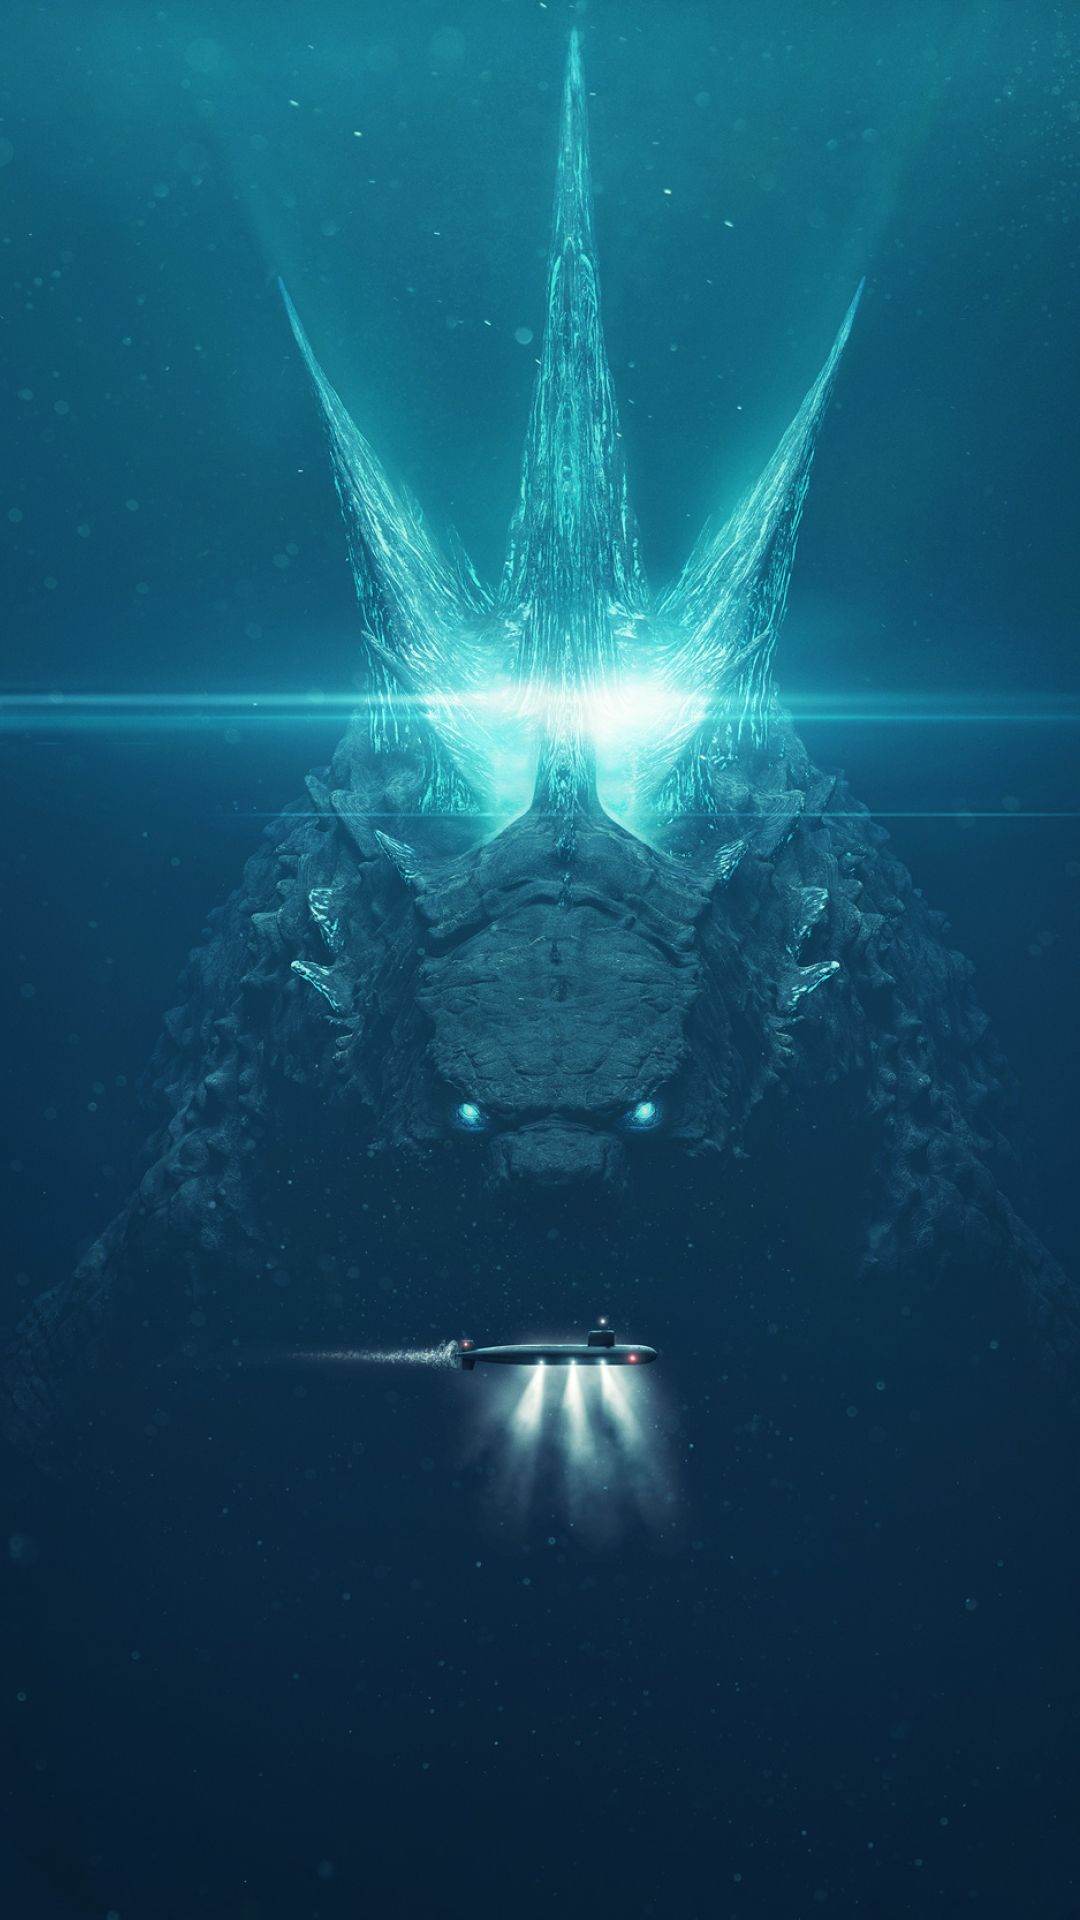 Godzilla King Of The Monsters 2019 In 2020 Godzilla Wallpaper All Godzilla Monsters Godzilla Vs